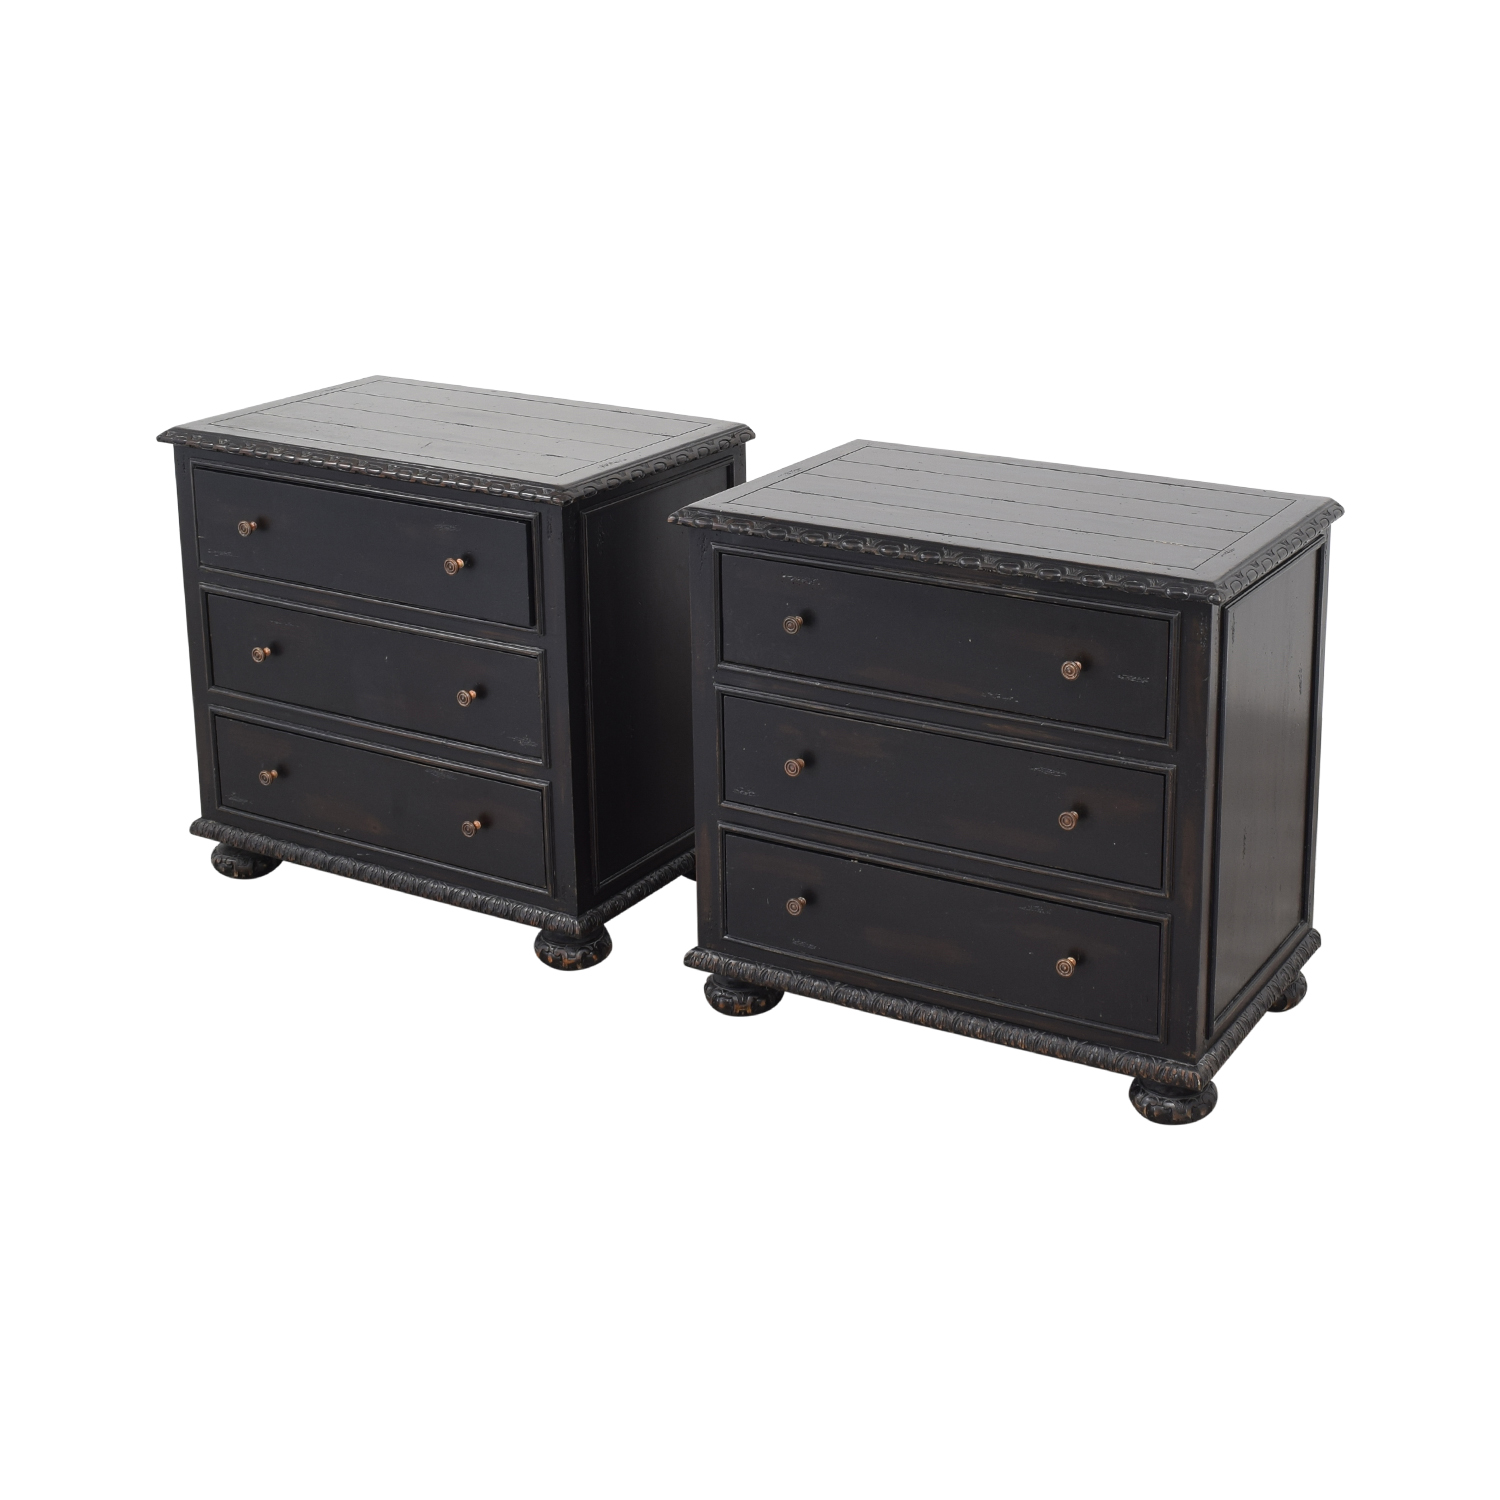 Restoration Hardware Restoration Hardware French Empire Closed Nightstands nyc